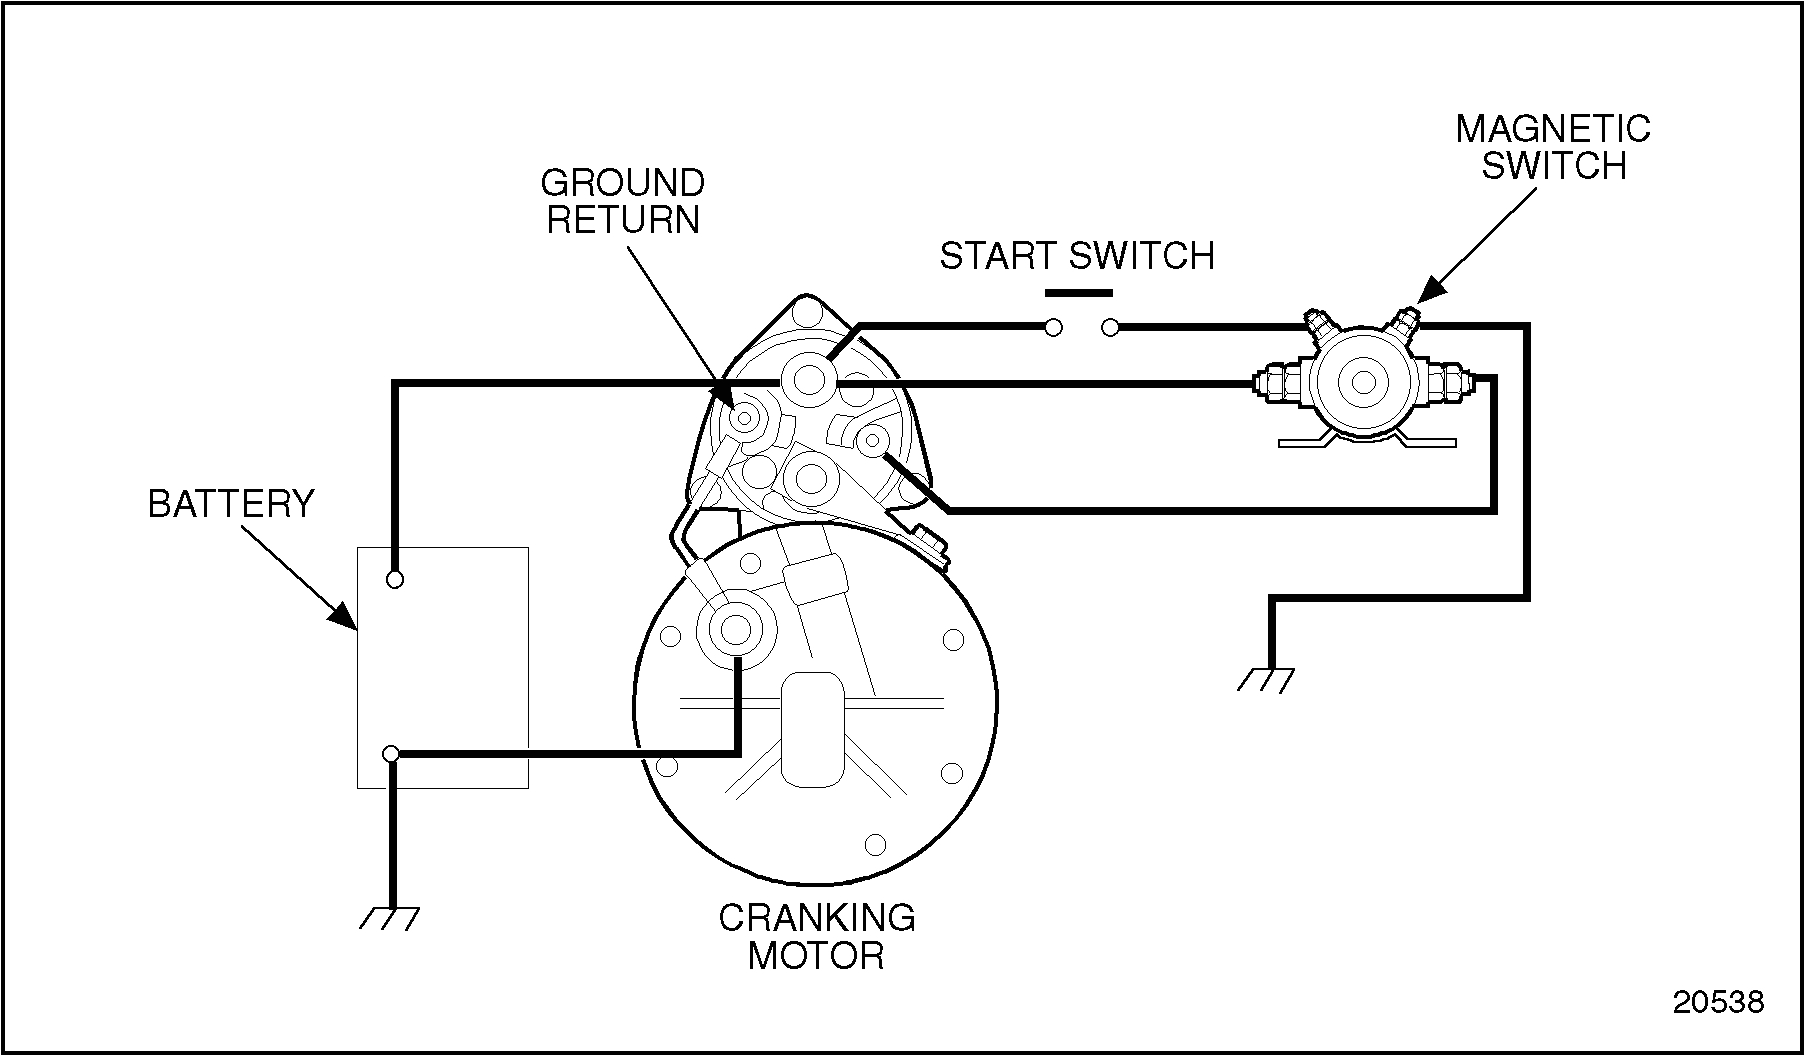 basic boat wiring diagram wiring diagram database simple series circuit diagram circuit diagrams for the od